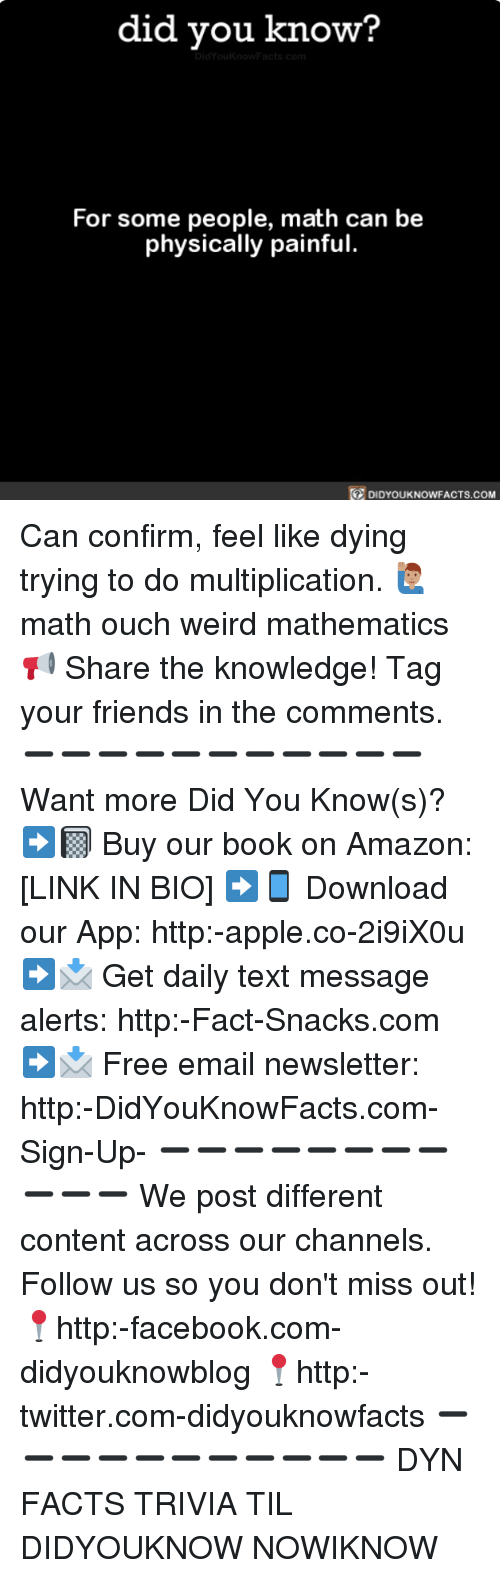 Confirmated: did you know?  For some people, math can be  physically painful.  DIDYOUKNOWFACTS.COM Can confirm, feel like dying trying to do multiplication. 🙋🏽‍♂️ math ouch weird mathematics 📢 Share the knowledge! Tag your friends in the comments. ➖➖➖➖➖➖➖➖➖➖➖ Want more Did You Know(s)? ➡📓 Buy our book on Amazon: [LINK IN BIO] ➡📱 Download our App: http:-apple.co-2i9iX0u ➡📩 Get daily text message alerts: http:-Fact-Snacks.com ➡📩 Free email newsletter: http:-DidYouKnowFacts.com-Sign-Up- ➖➖➖➖➖➖➖➖➖➖➖ We post different content across our channels. Follow us so you don't miss out! 📍http:-facebook.com-didyouknowblog 📍http:-twitter.com-didyouknowfacts ➖➖➖➖➖➖➖➖➖➖➖ DYN FACTS TRIVIA TIL DIDYOUKNOW NOWIKNOW